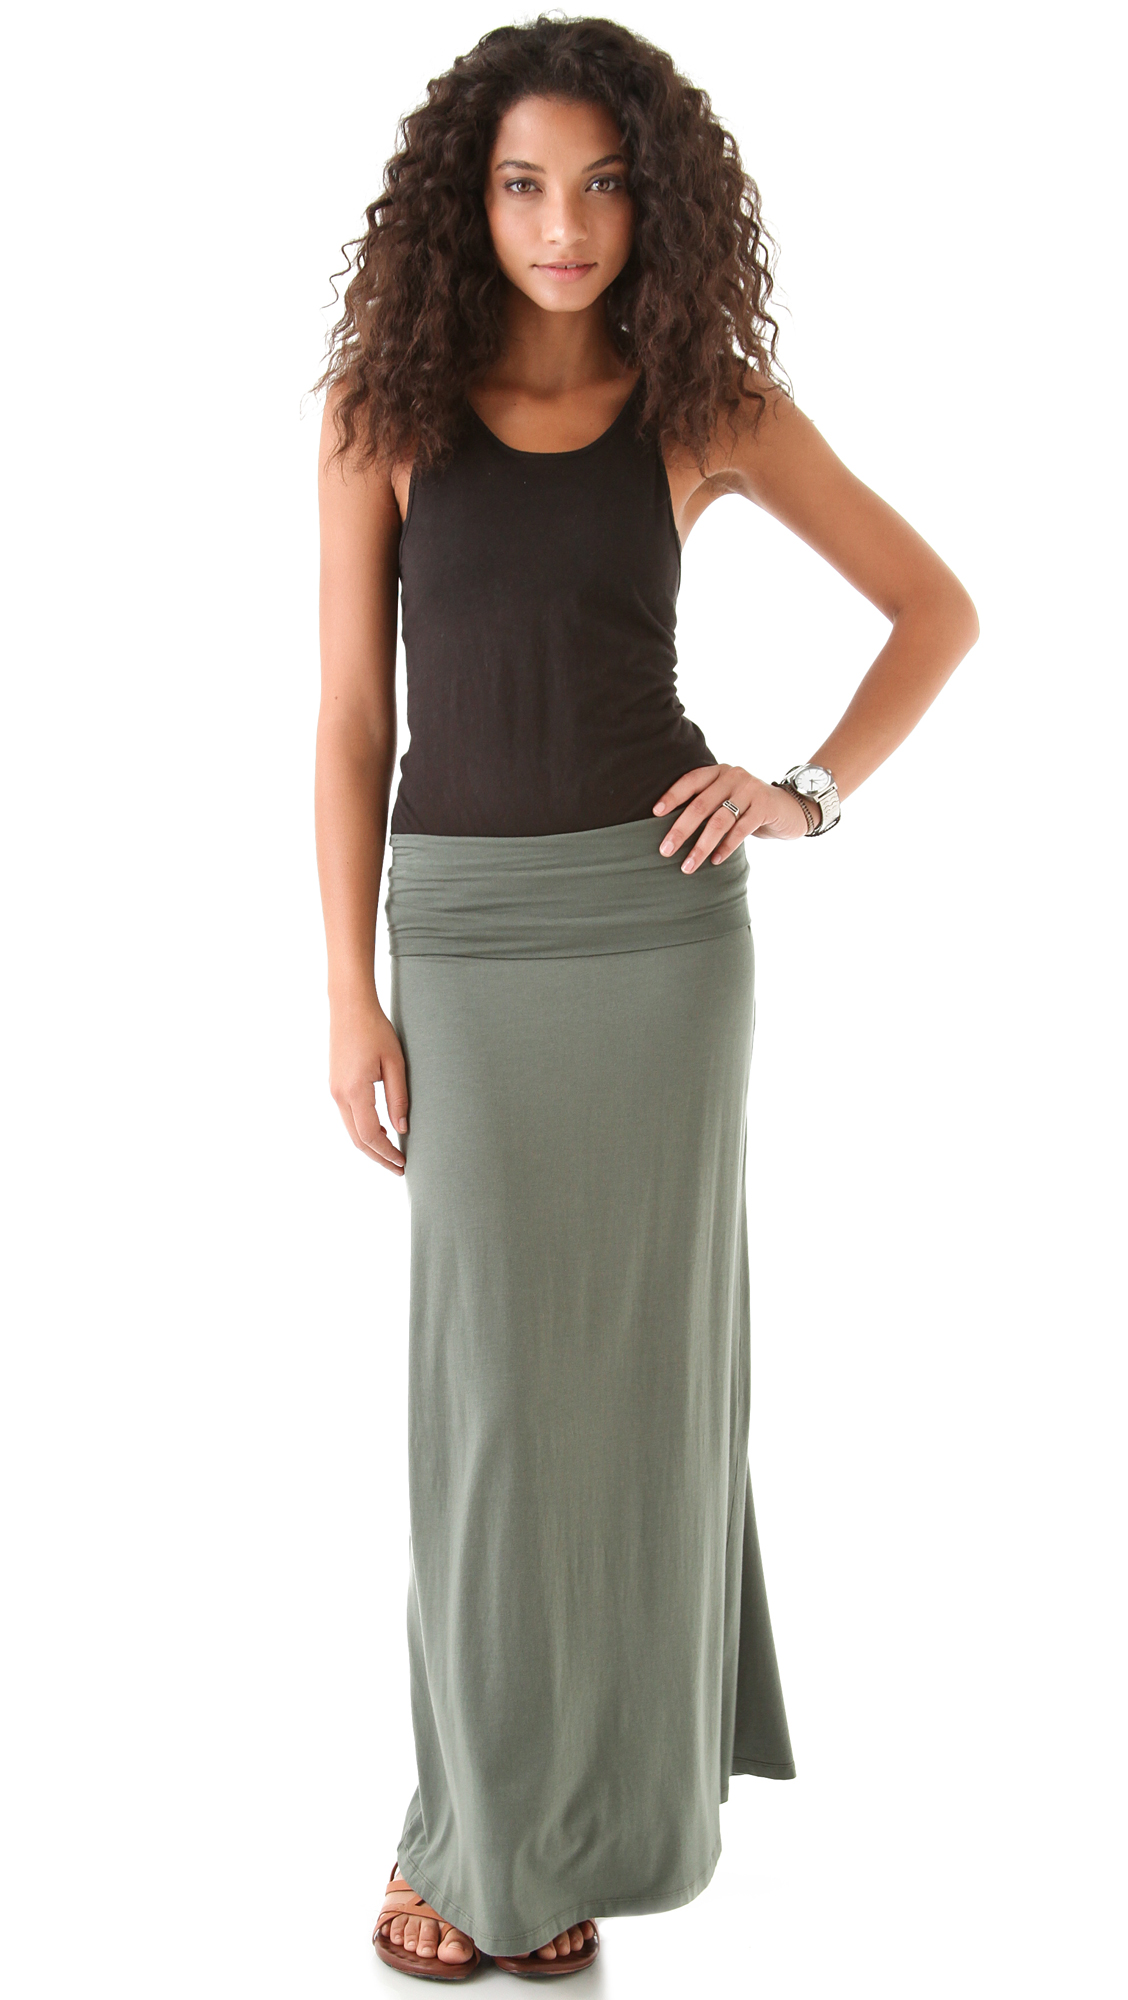 Splendid Maxi Tube Skirt / Dress | 15% off first app purchase with ...